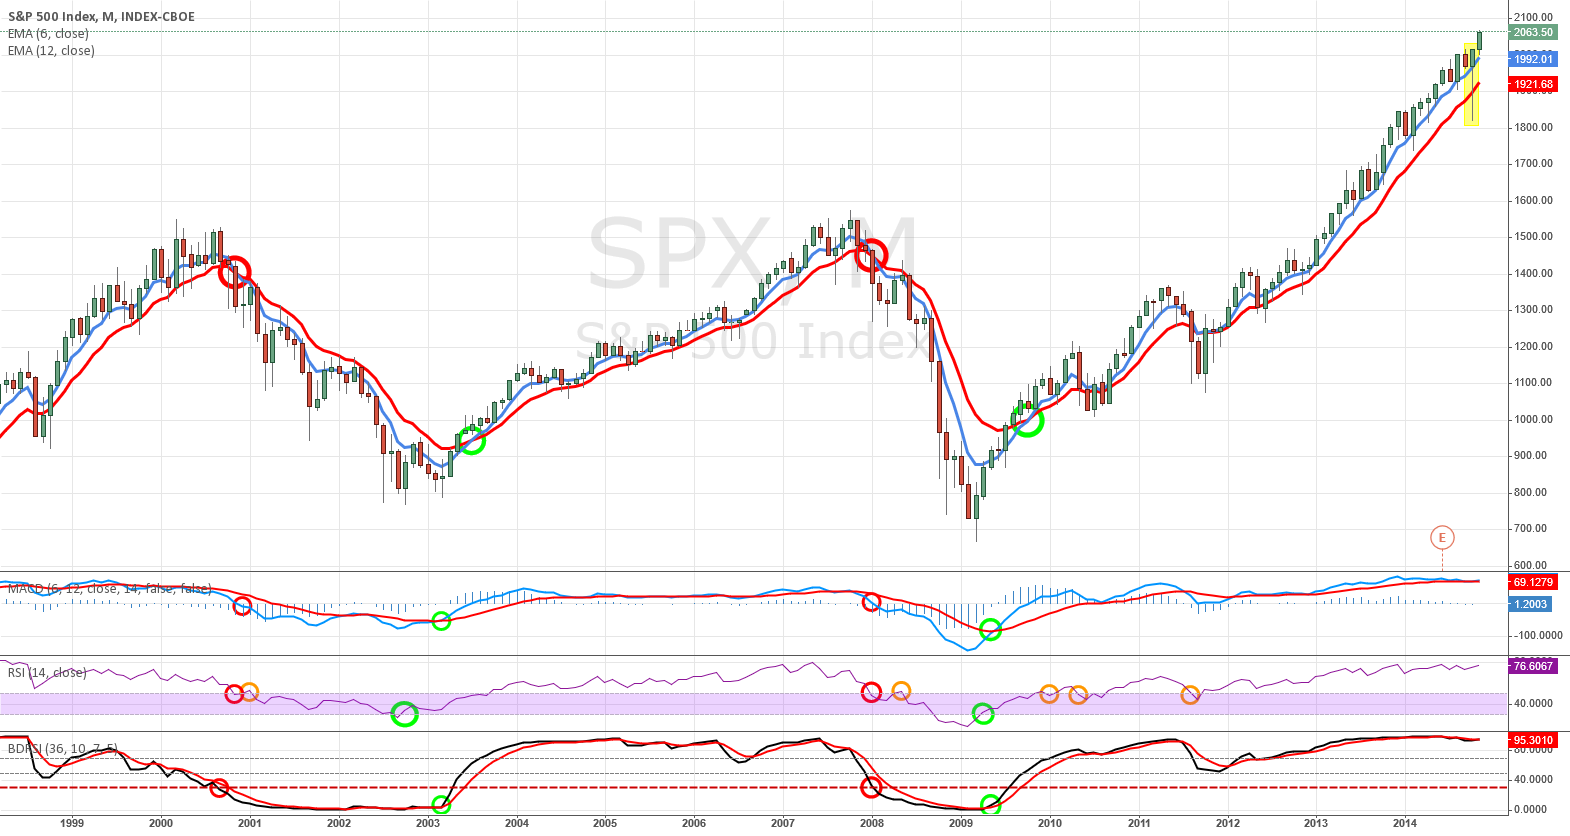 Technical Indicators for Long-term Market Timing for SP:SPX